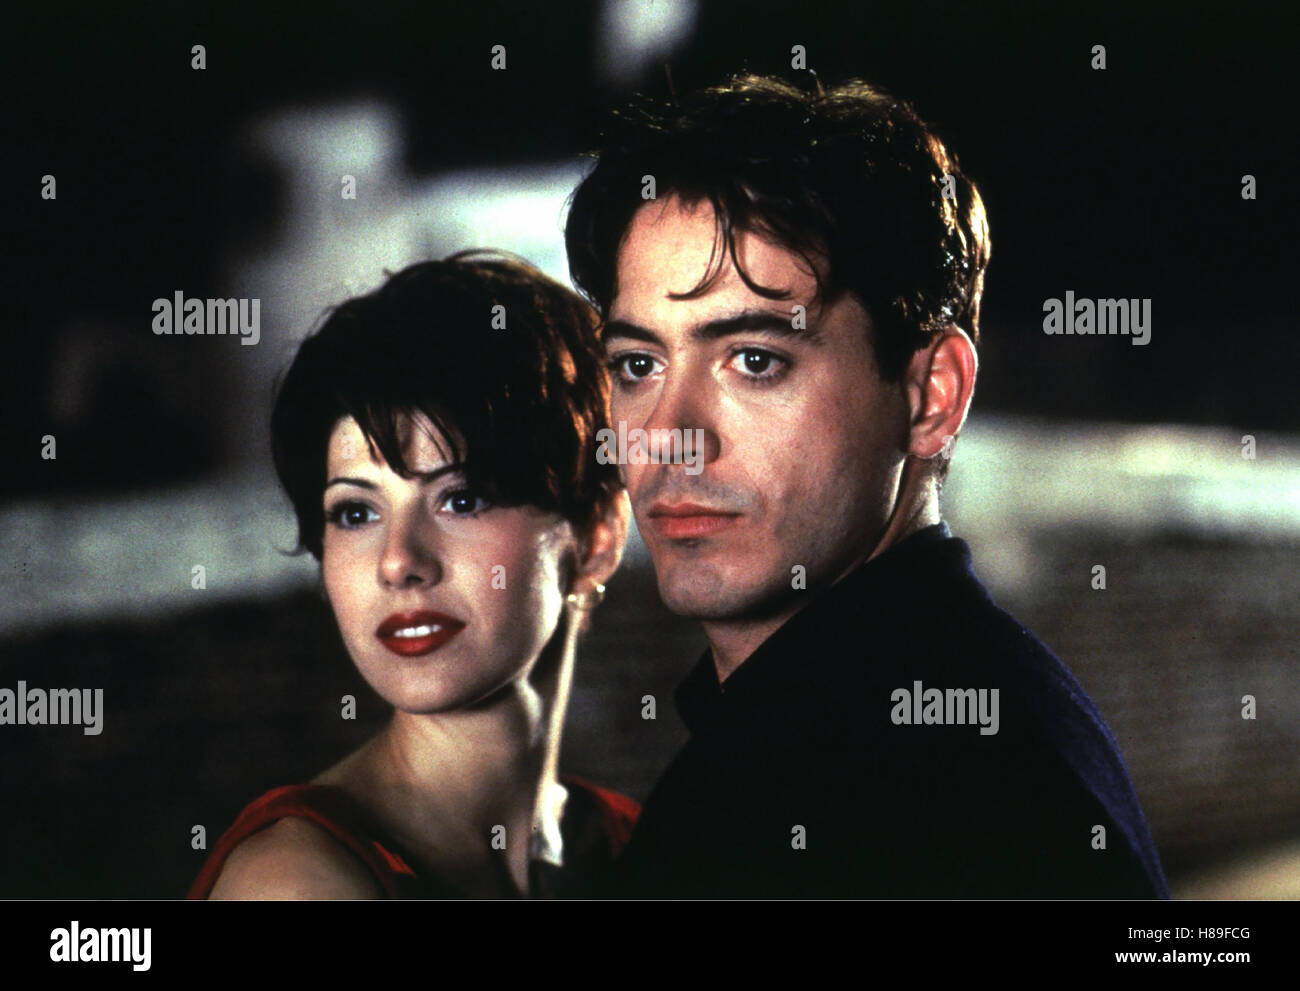 Nur für Dich - Only You, (ONLY YOU) USA 1994, Regie: Norman Jewison, MARISA TOMEI, ROBERT DOWNEY JR. - Stock Image